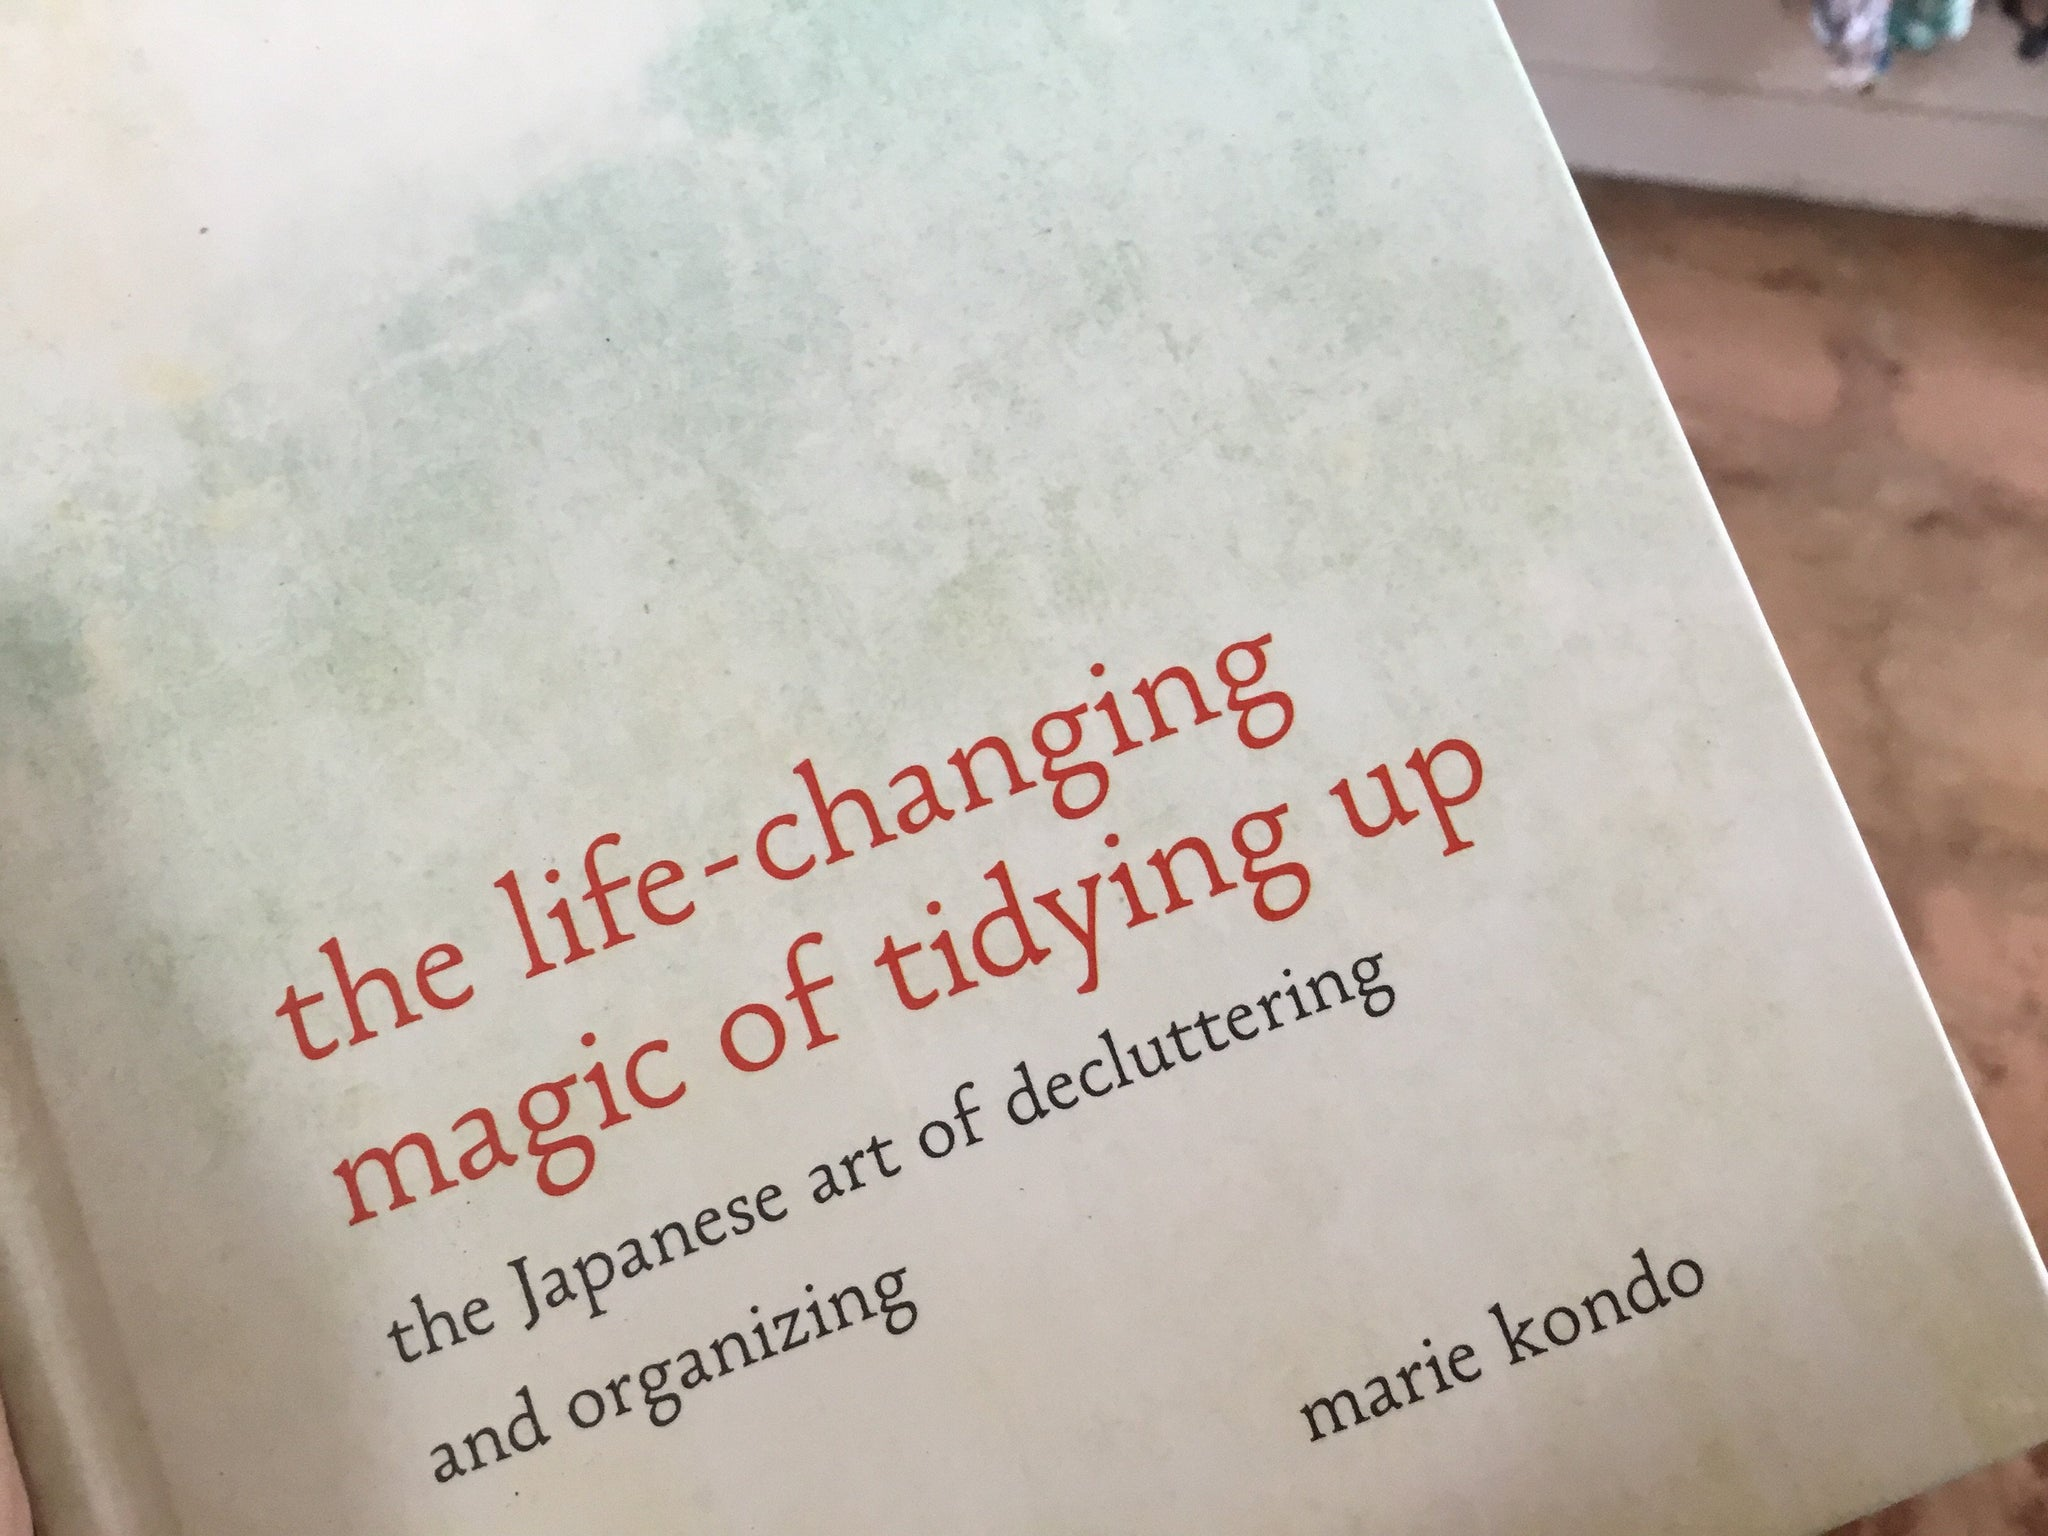 THE LIFE-CHANGING MAGIC OF TYDYING UP